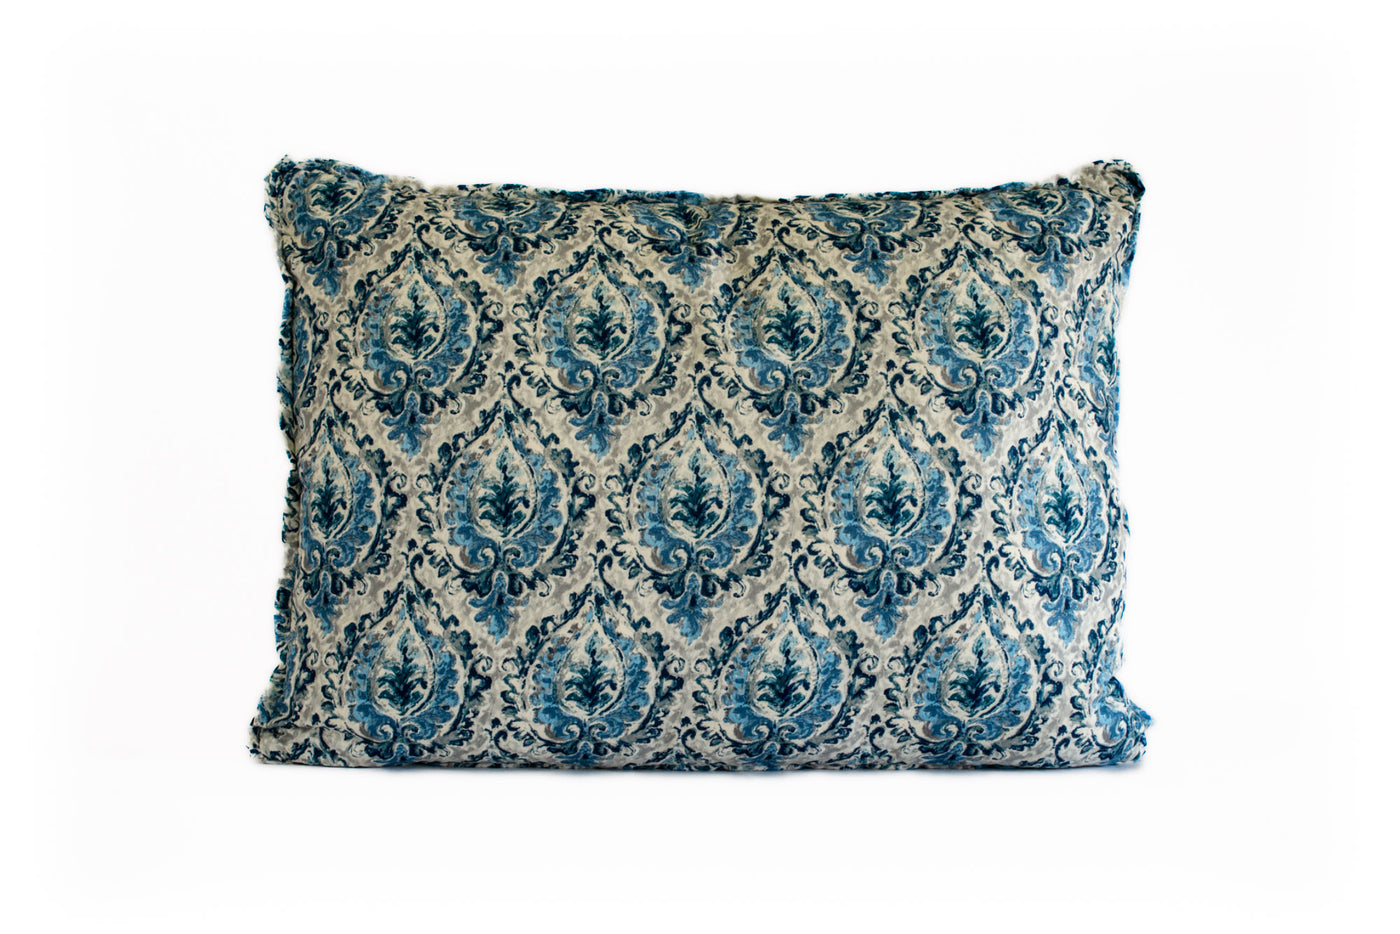 King Euro Pillow Blue and Gray Print